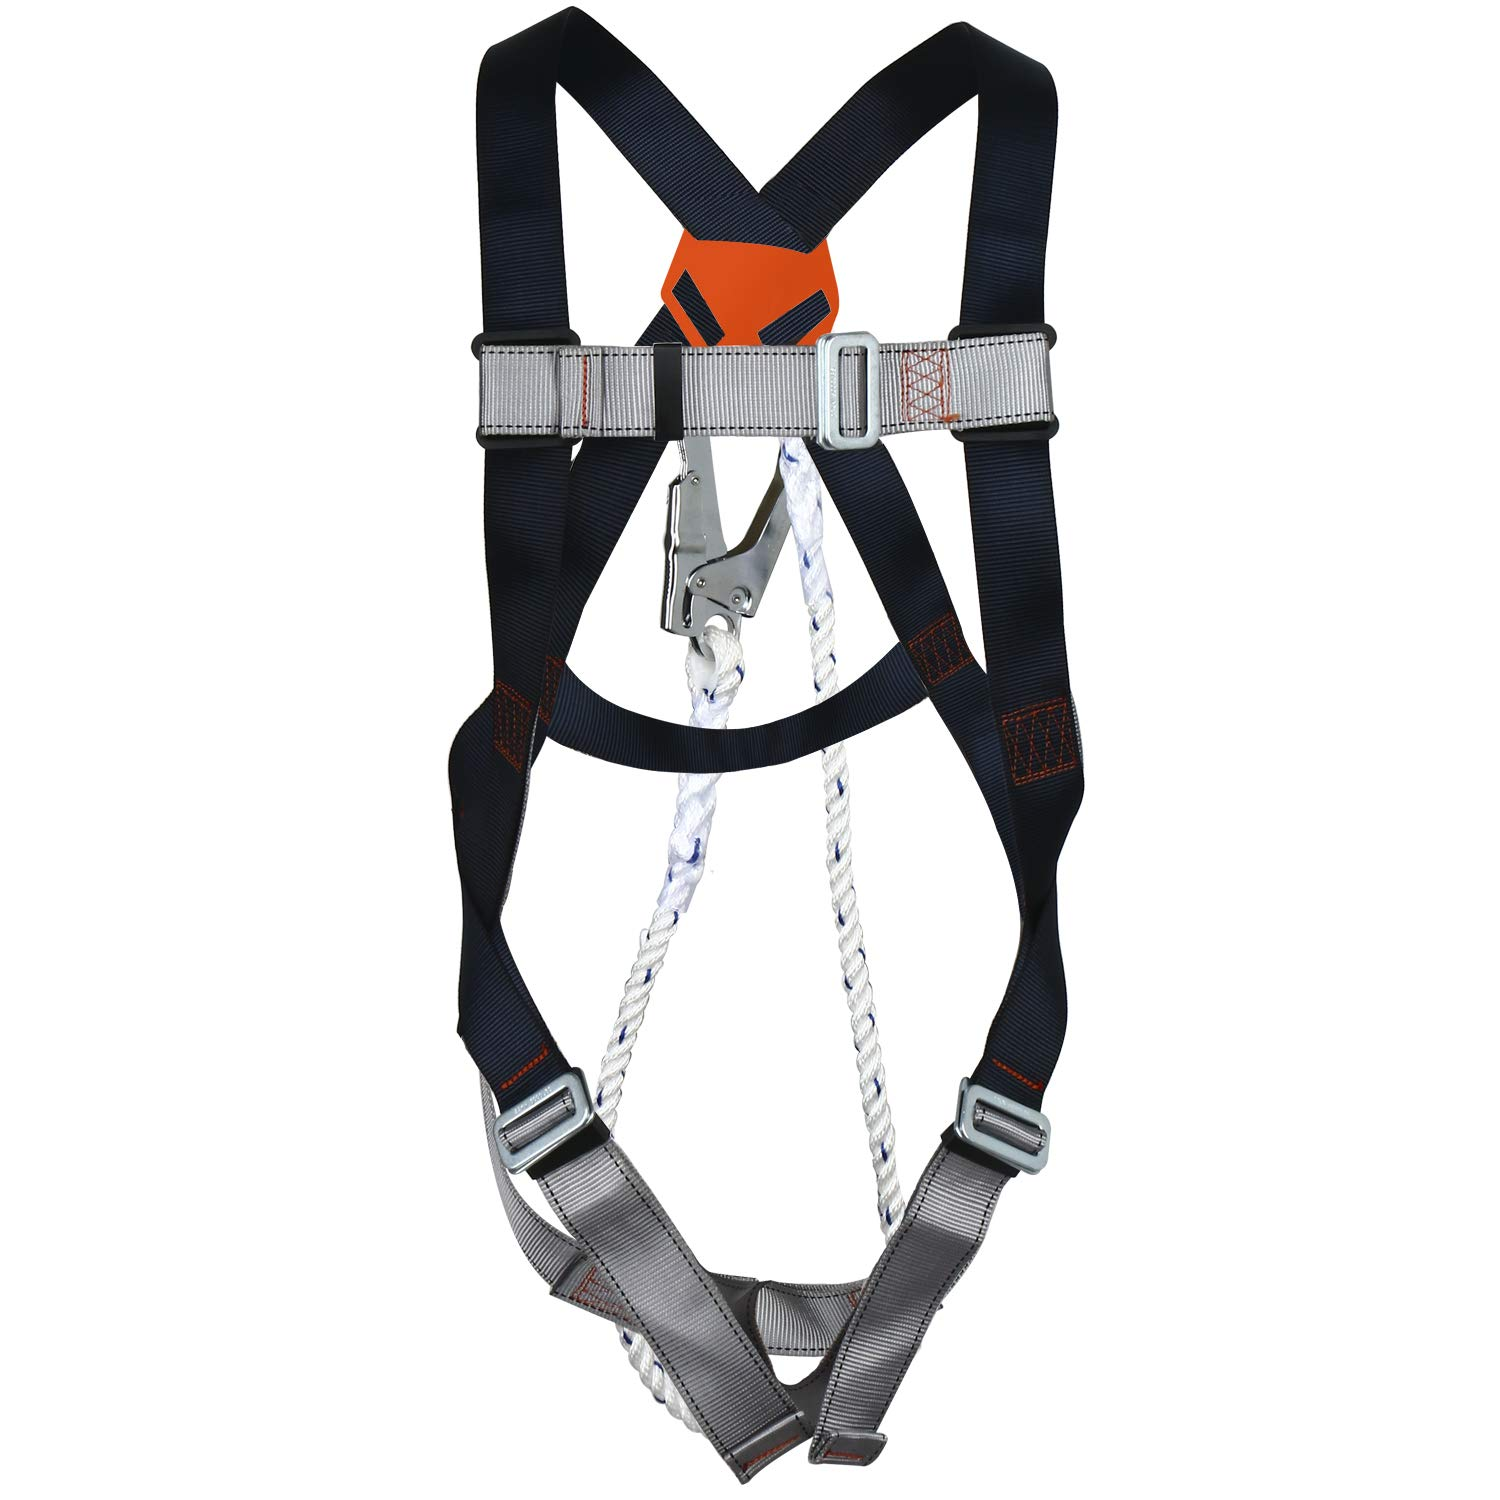 Safety Harness Fall Protection Kit, Construction Full Body System, With 3.2 ft Lanyard Size up To 42'' Waist, 22KN